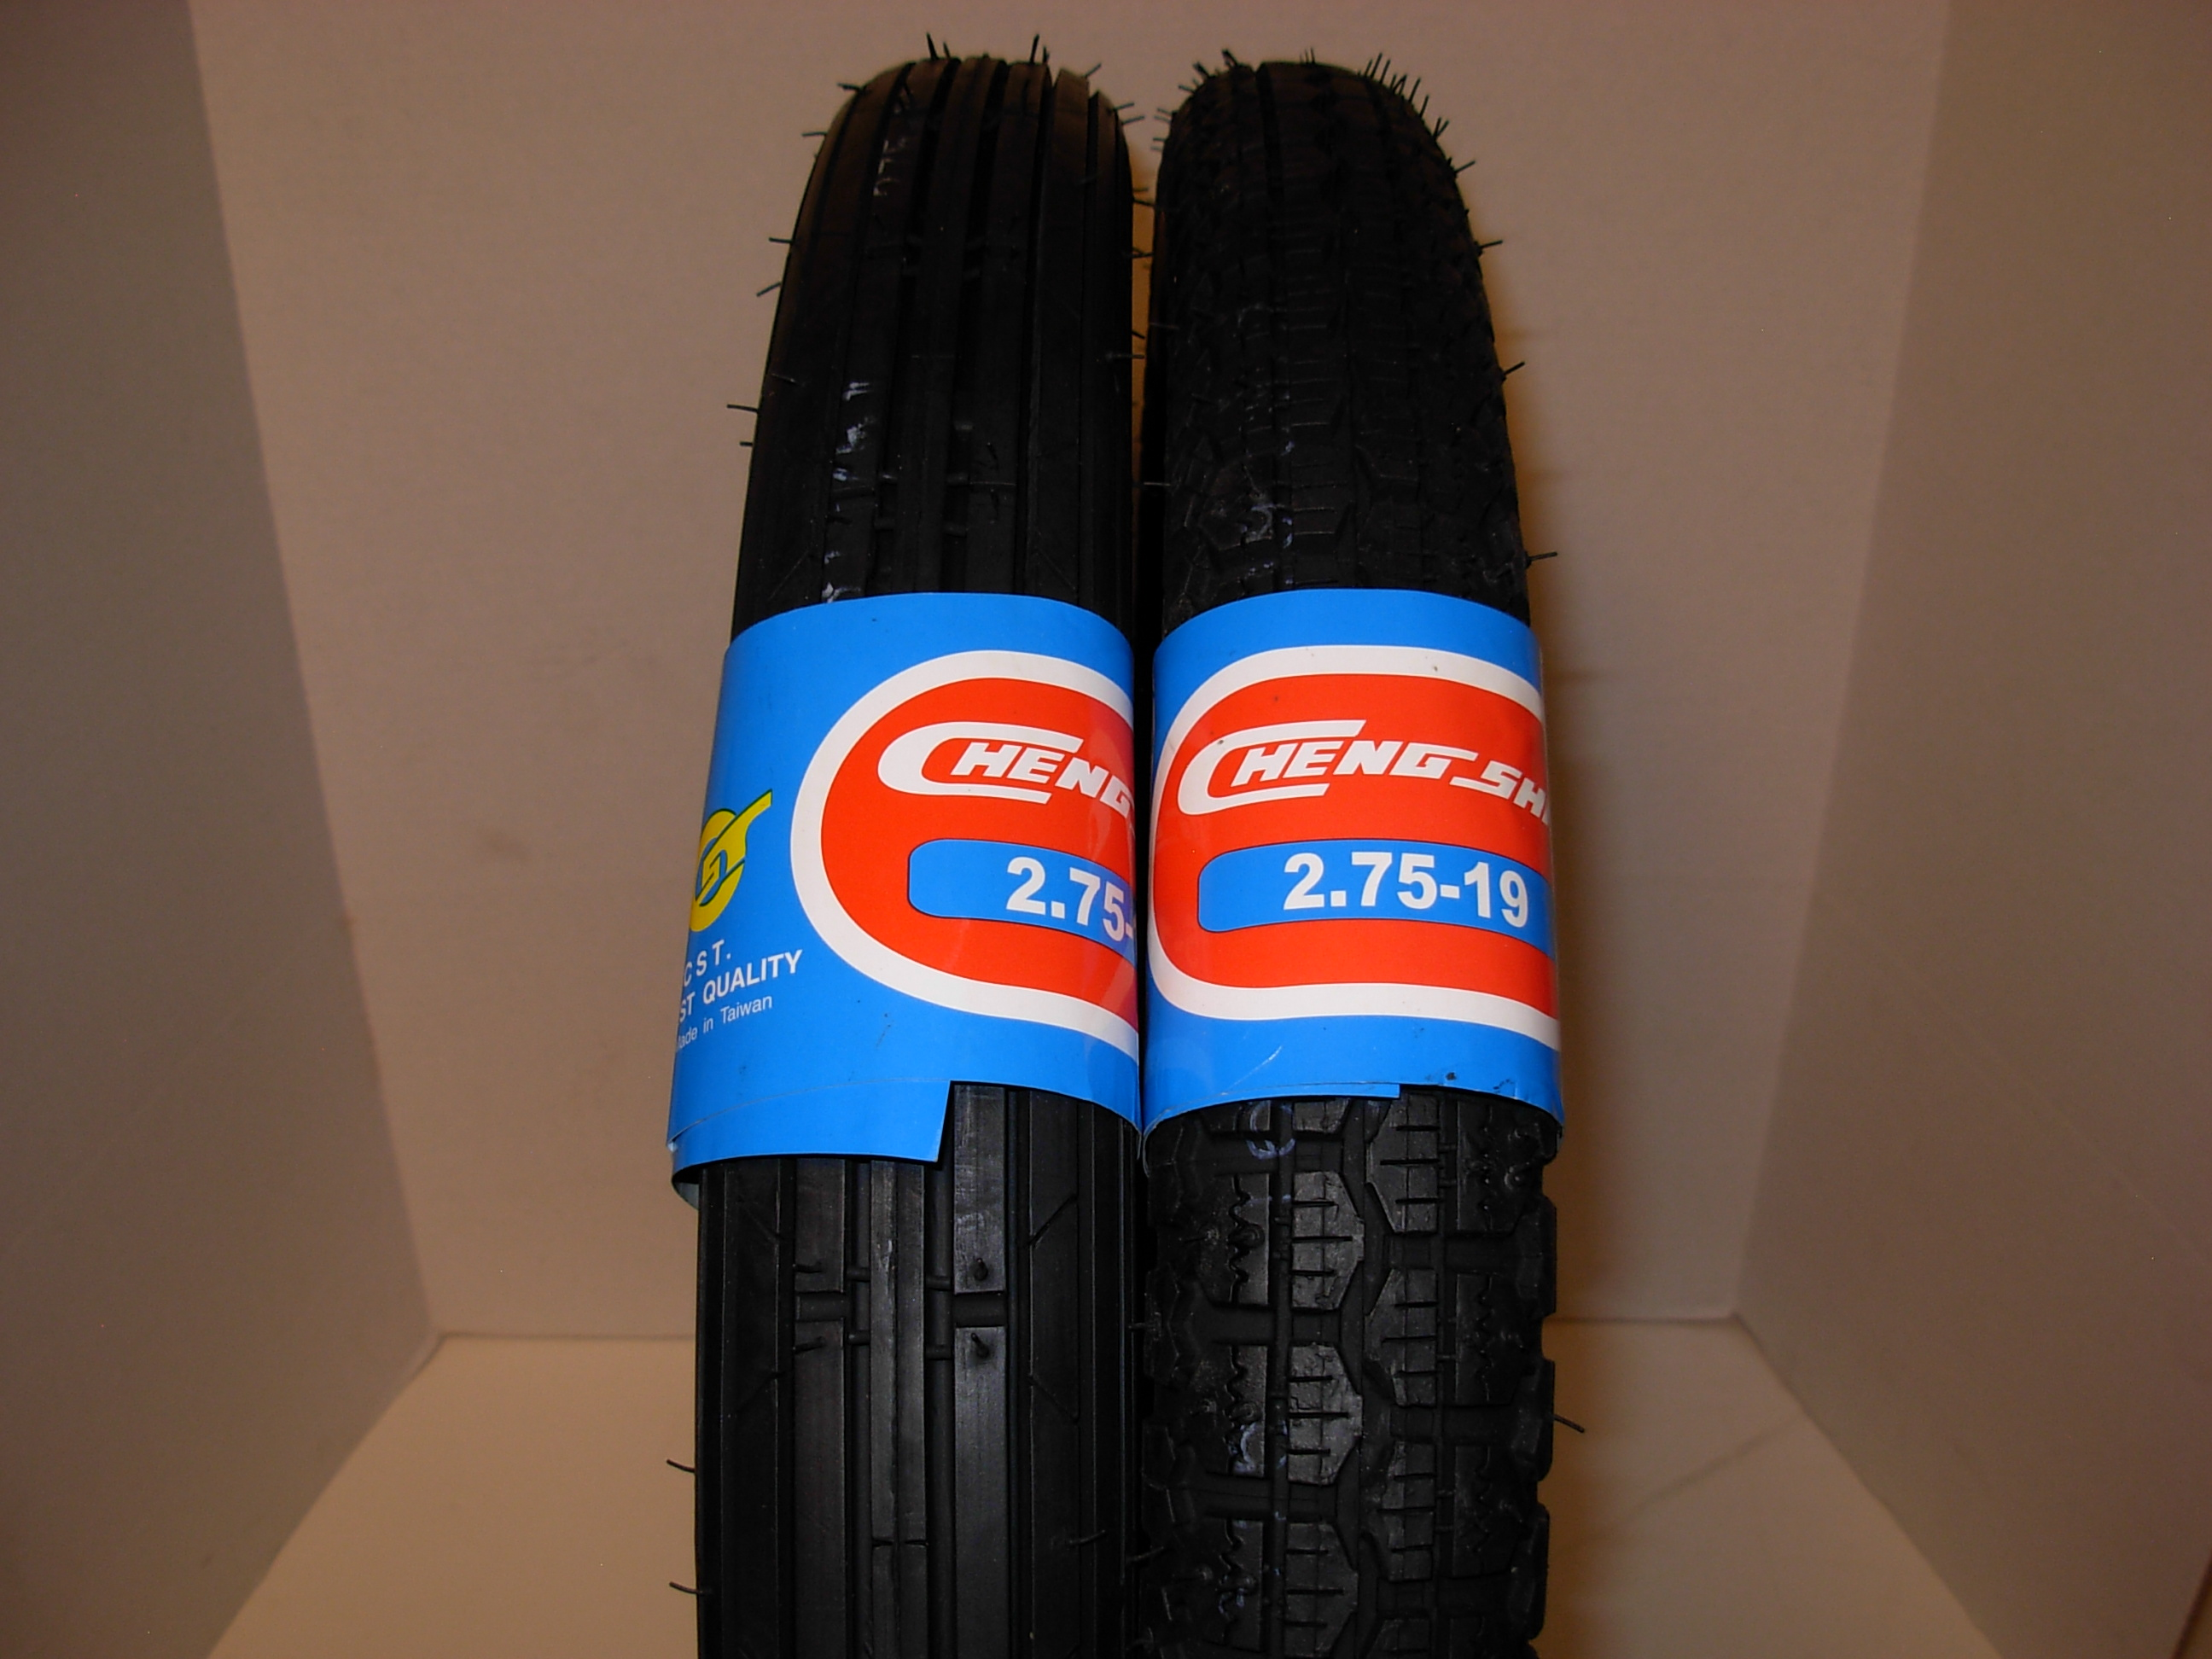 New 2.75 – 19  2.75 x 19 Cheng Shin tires pair Pirelli pattern  motorcycle tires ribbed front block rear sold as a set